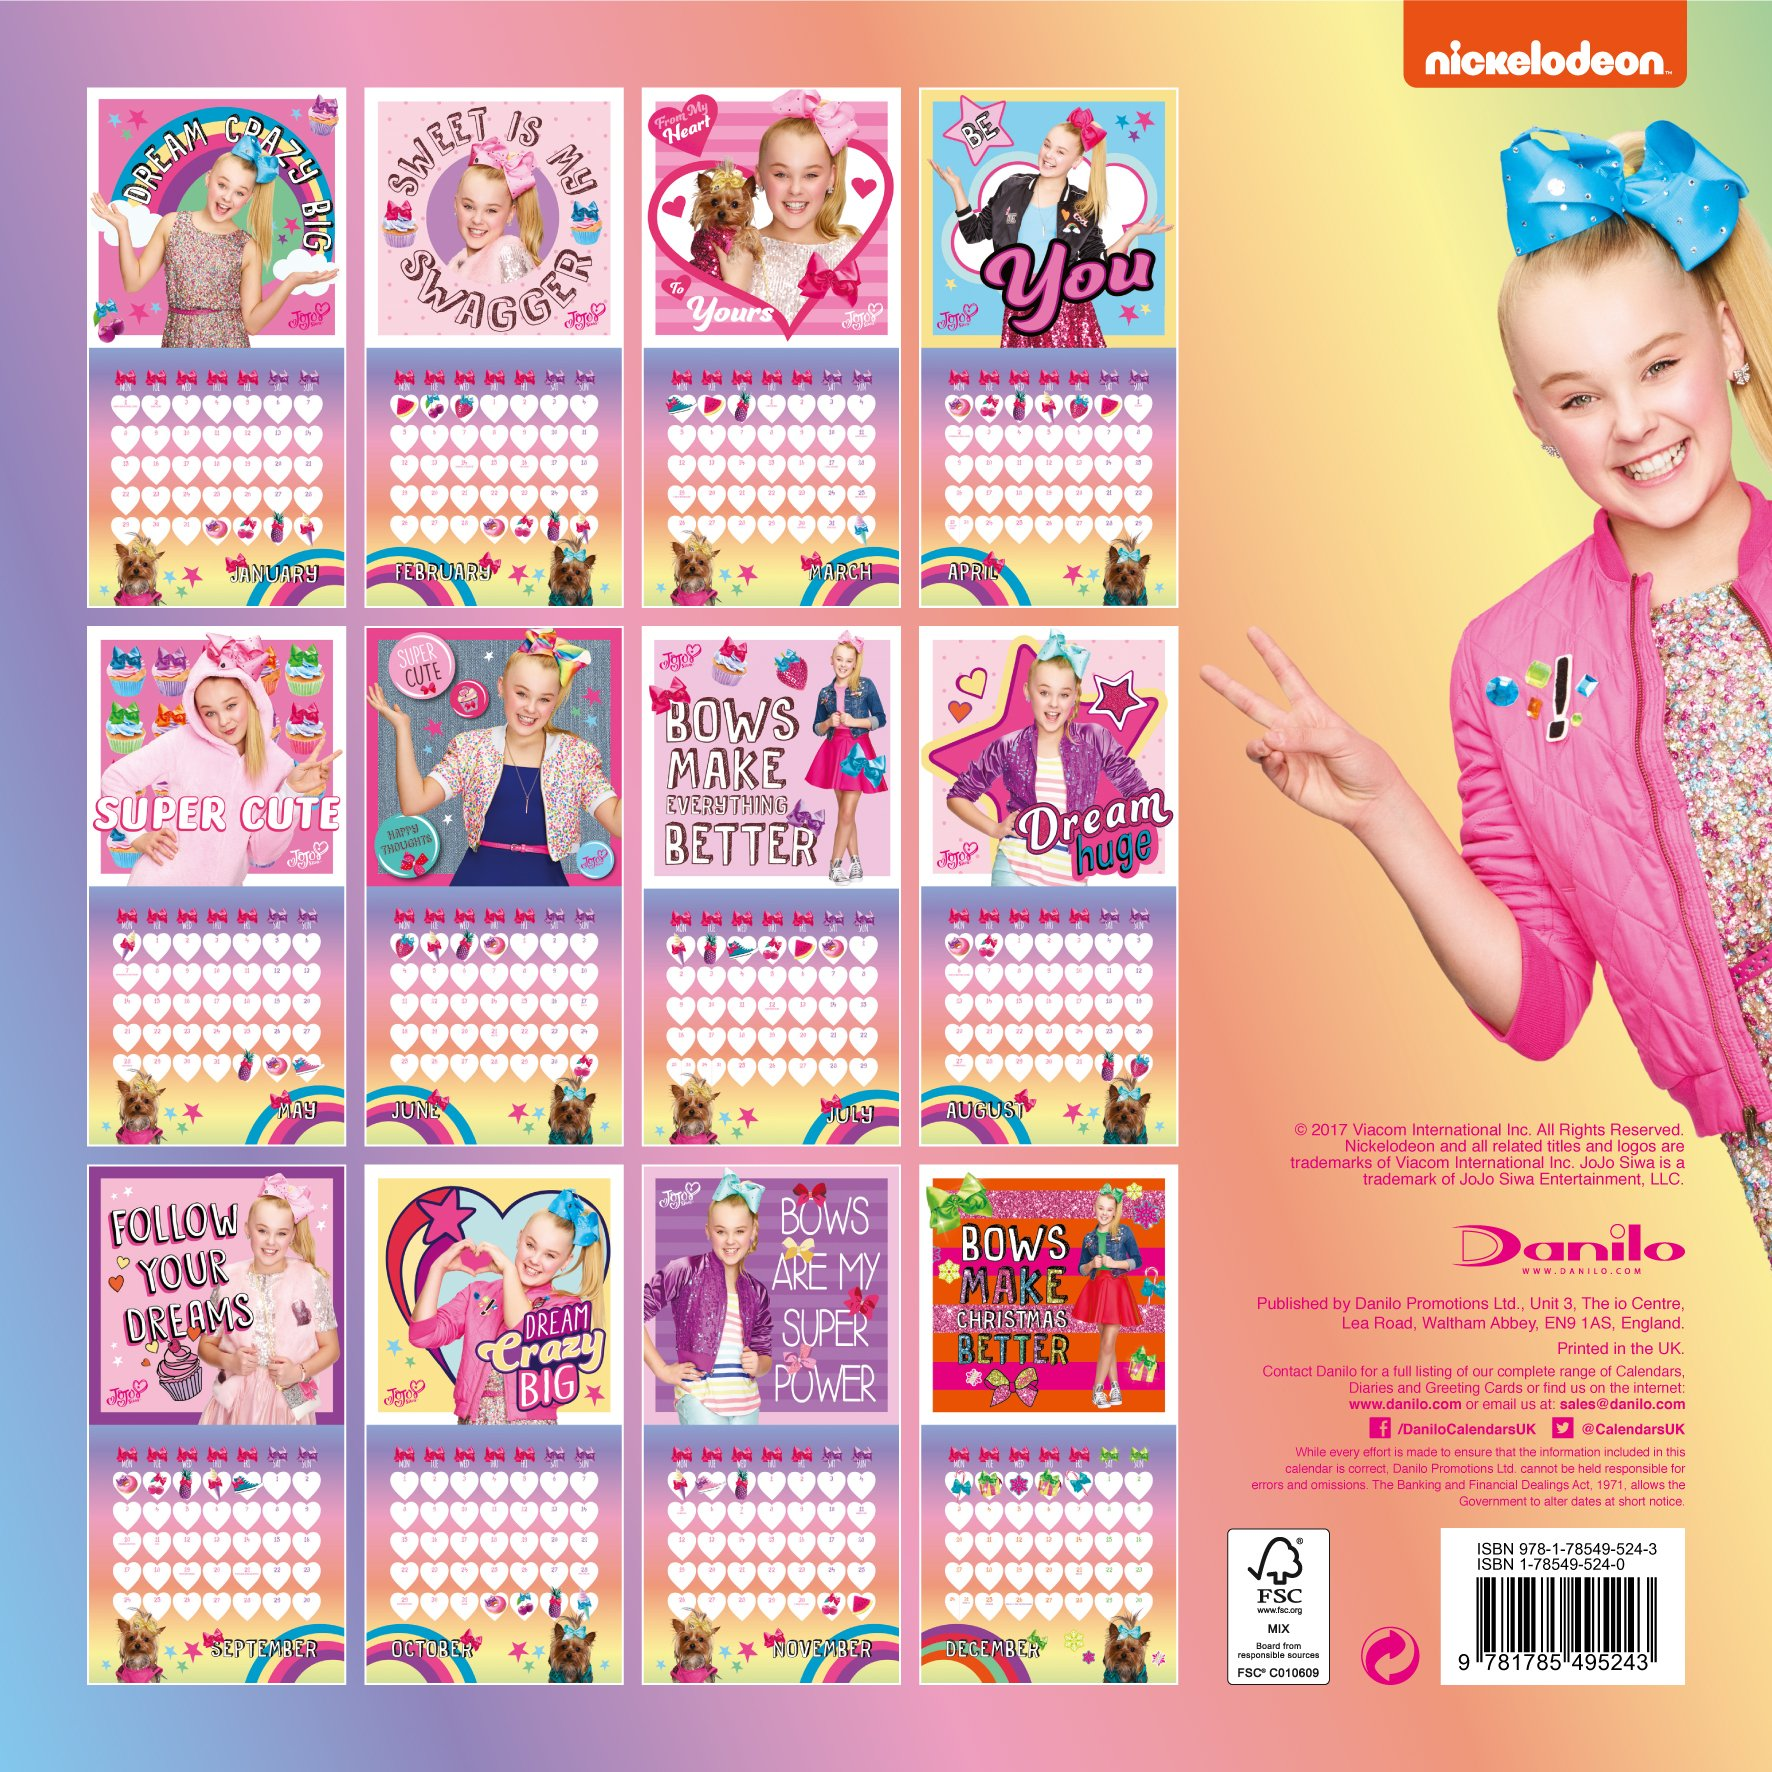 Jojo Siwa Official 2018 Calendar Square Wall Format 9781785495298